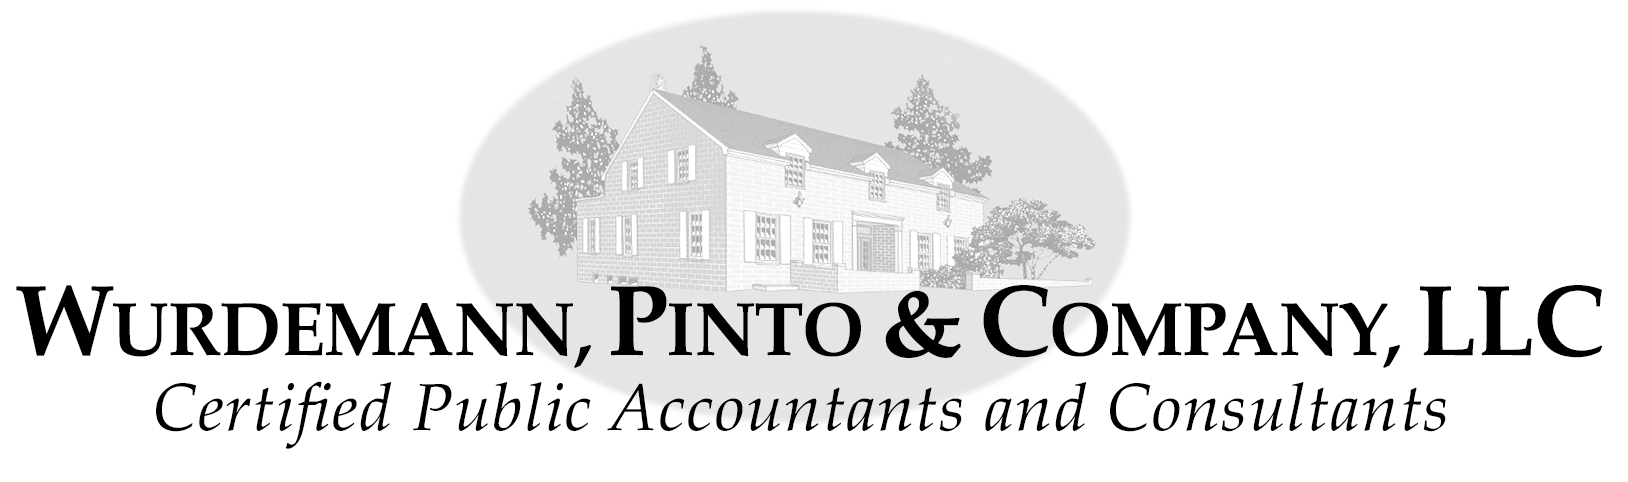 Hackensack, NJ Accounting Firm | Record Retention Guide | Wurdemann, Pinto & Co. LLC